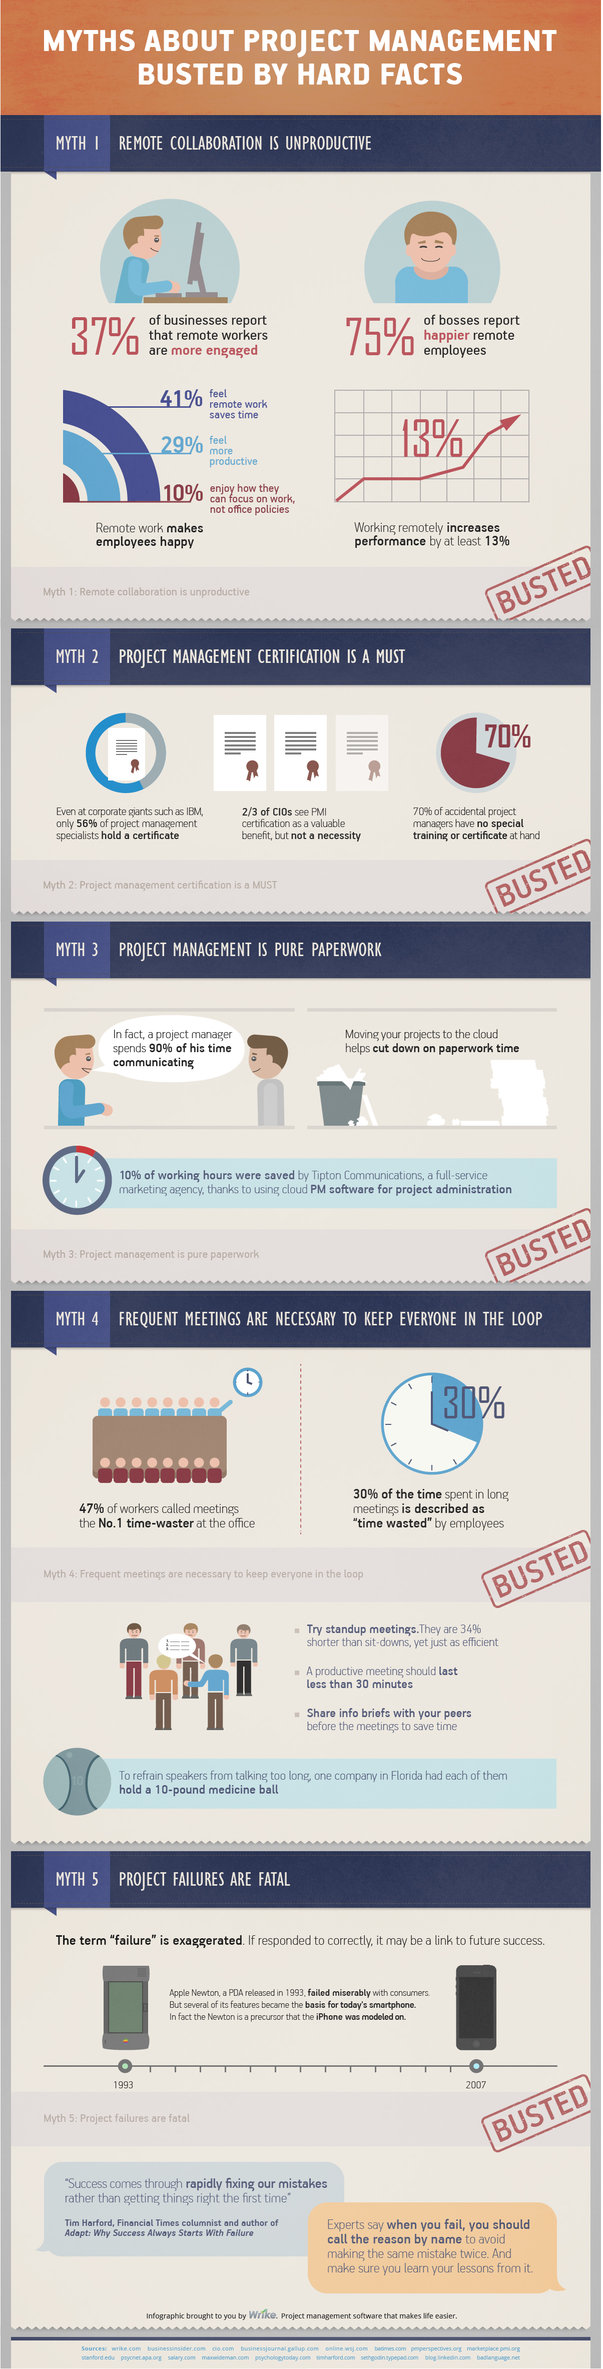 Myths About Project Management Busted By Hard Facts (Infographic)